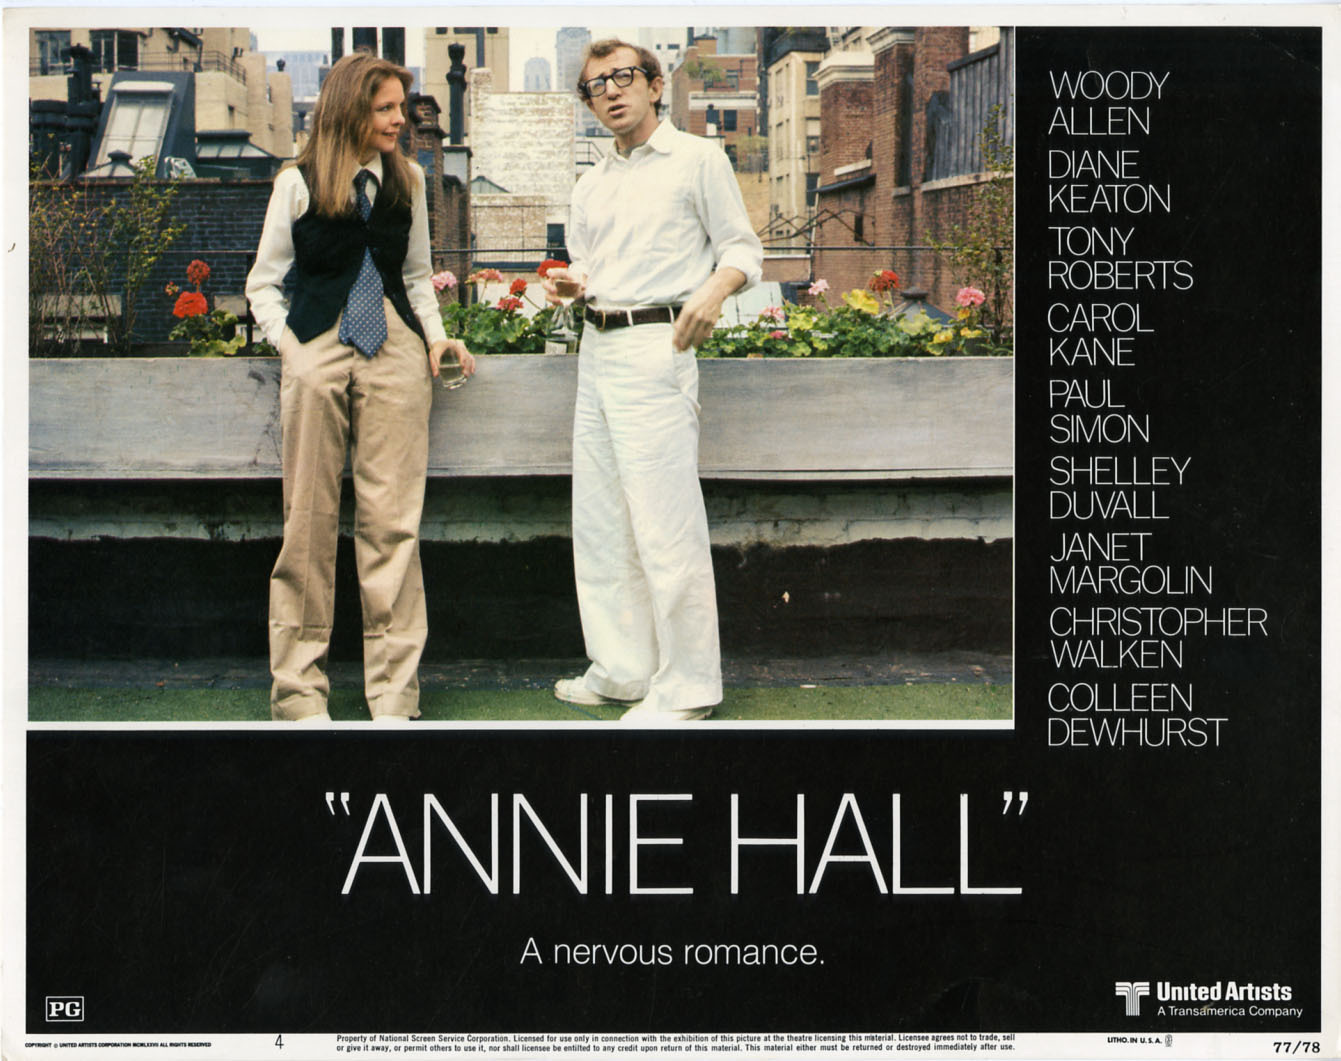 an analysis of annie hall a movie by woody allen Annie hall is a romantic comedy directed by woody allen and written by woody allen and marshall brickman released in 1977, it was a departure from the slapstick comedies that woody allen was so.